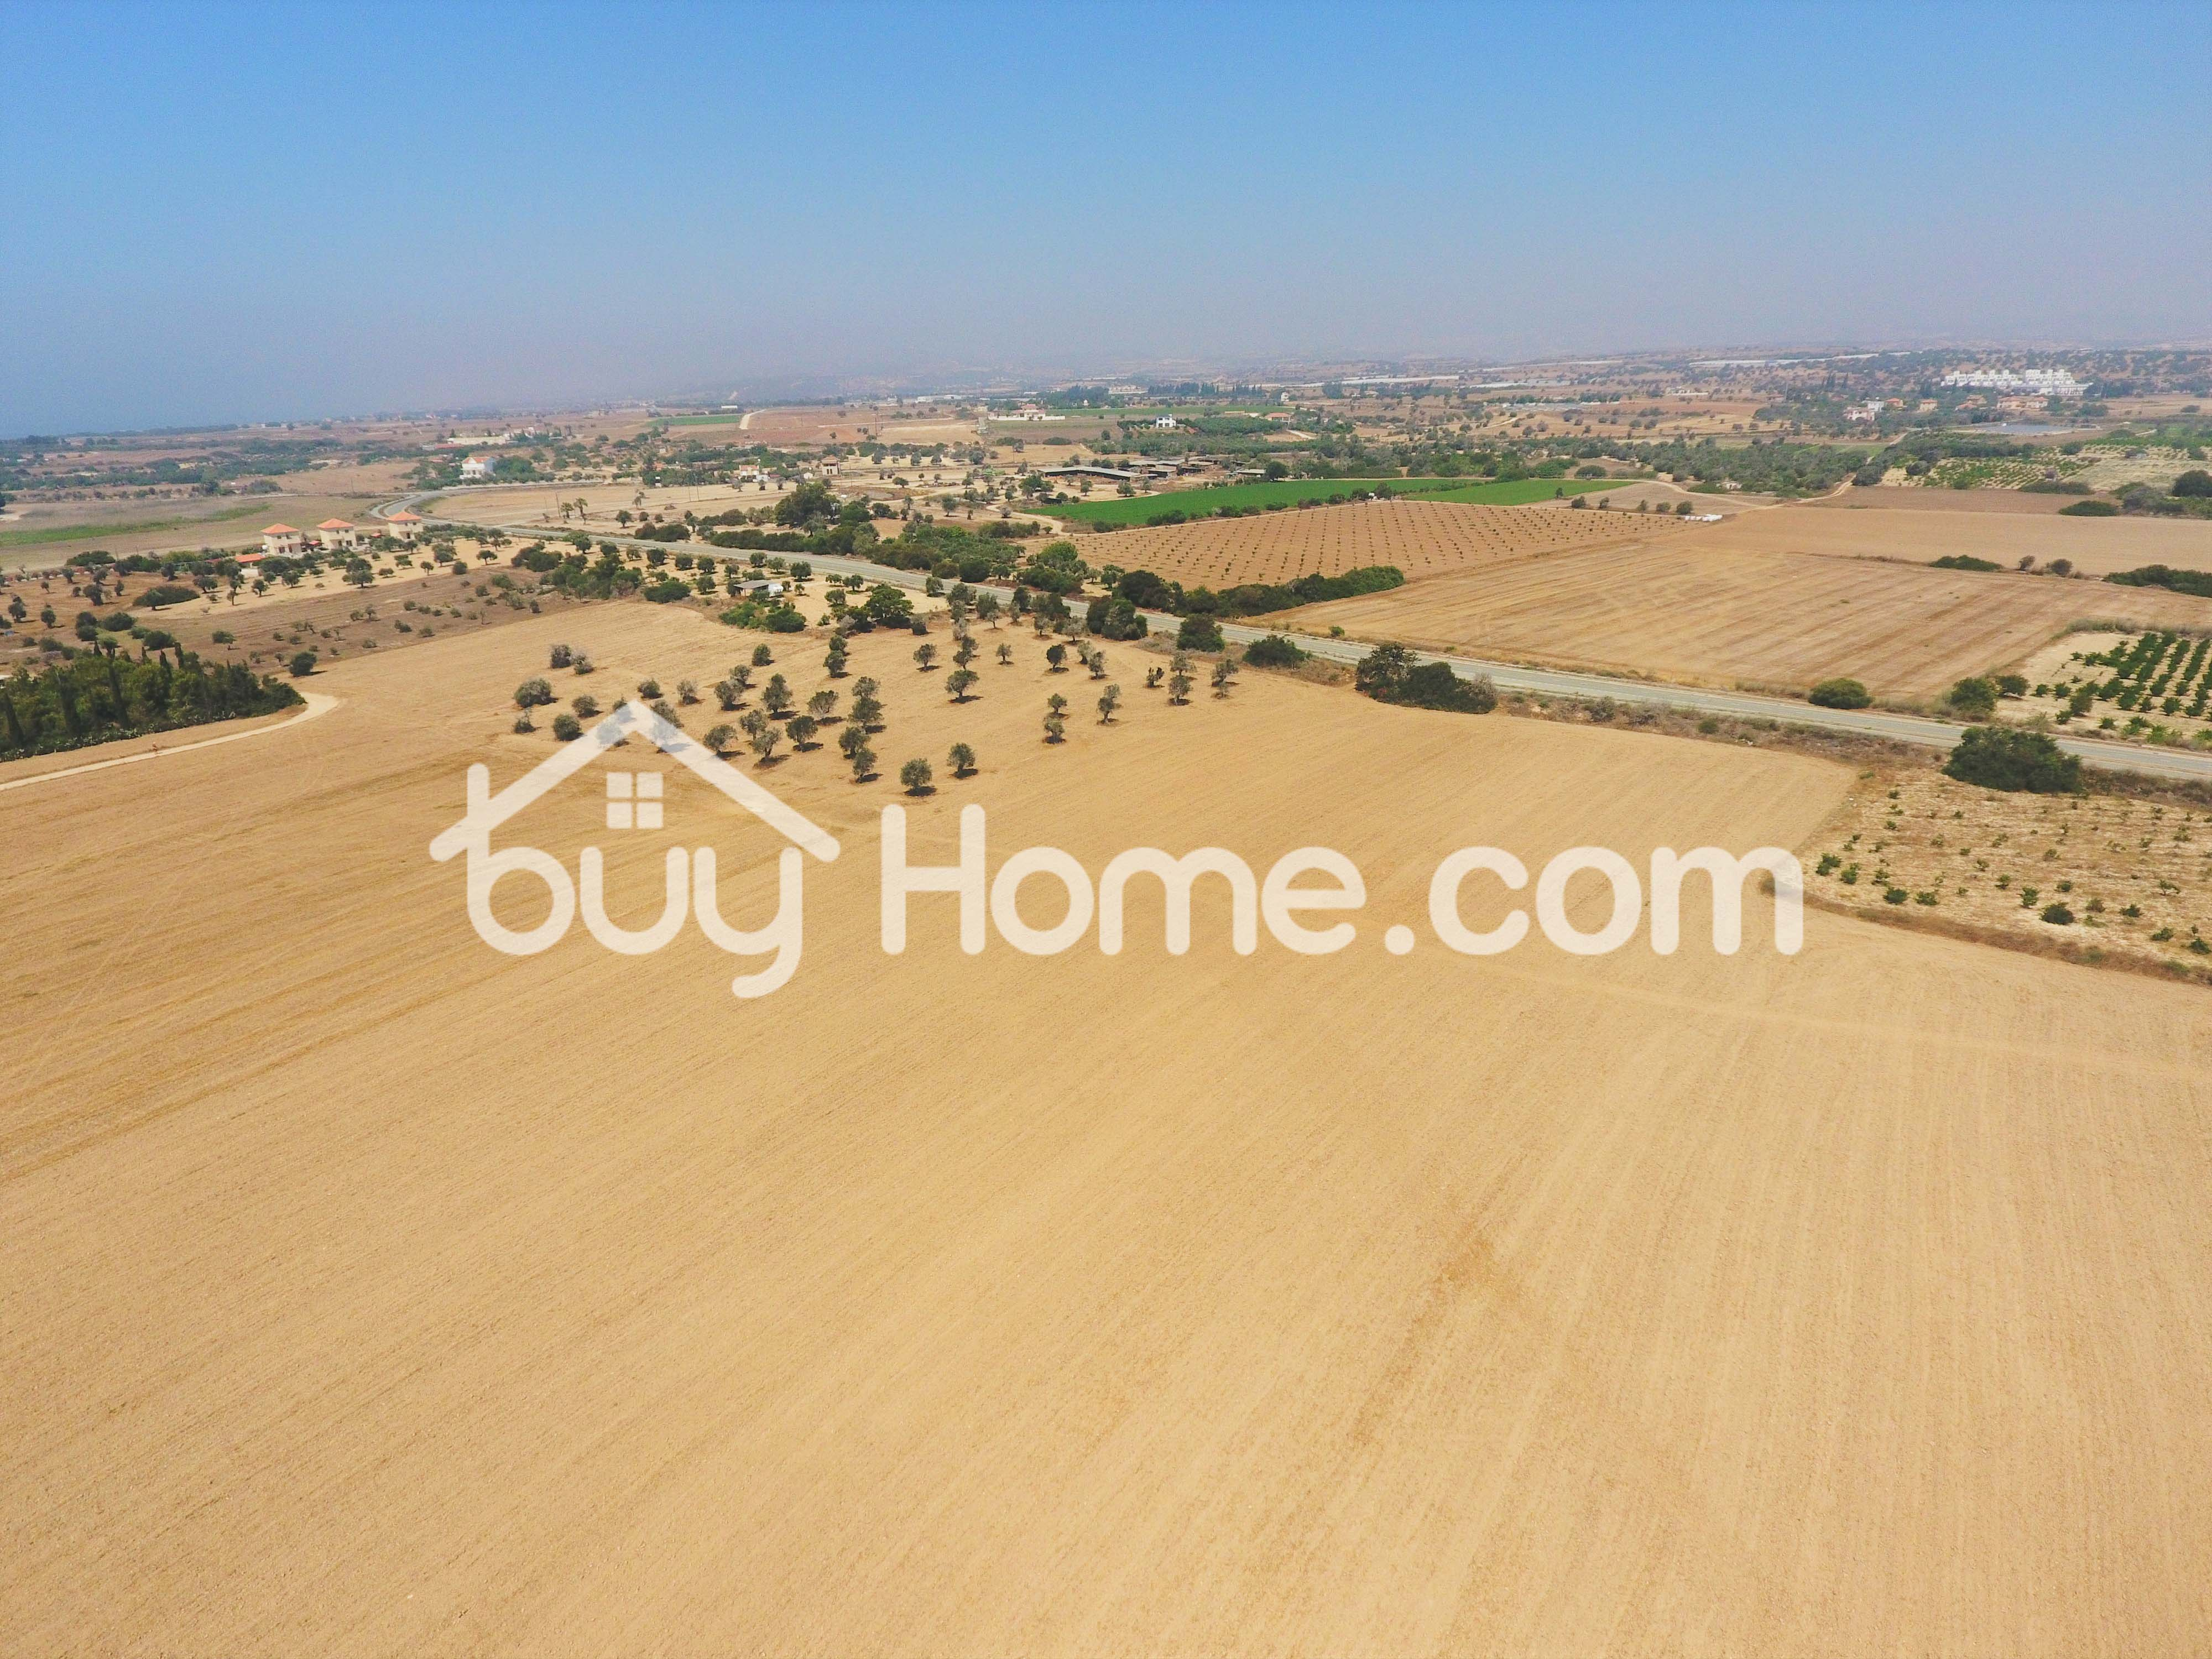 Land with House Building Permit | BuyHome